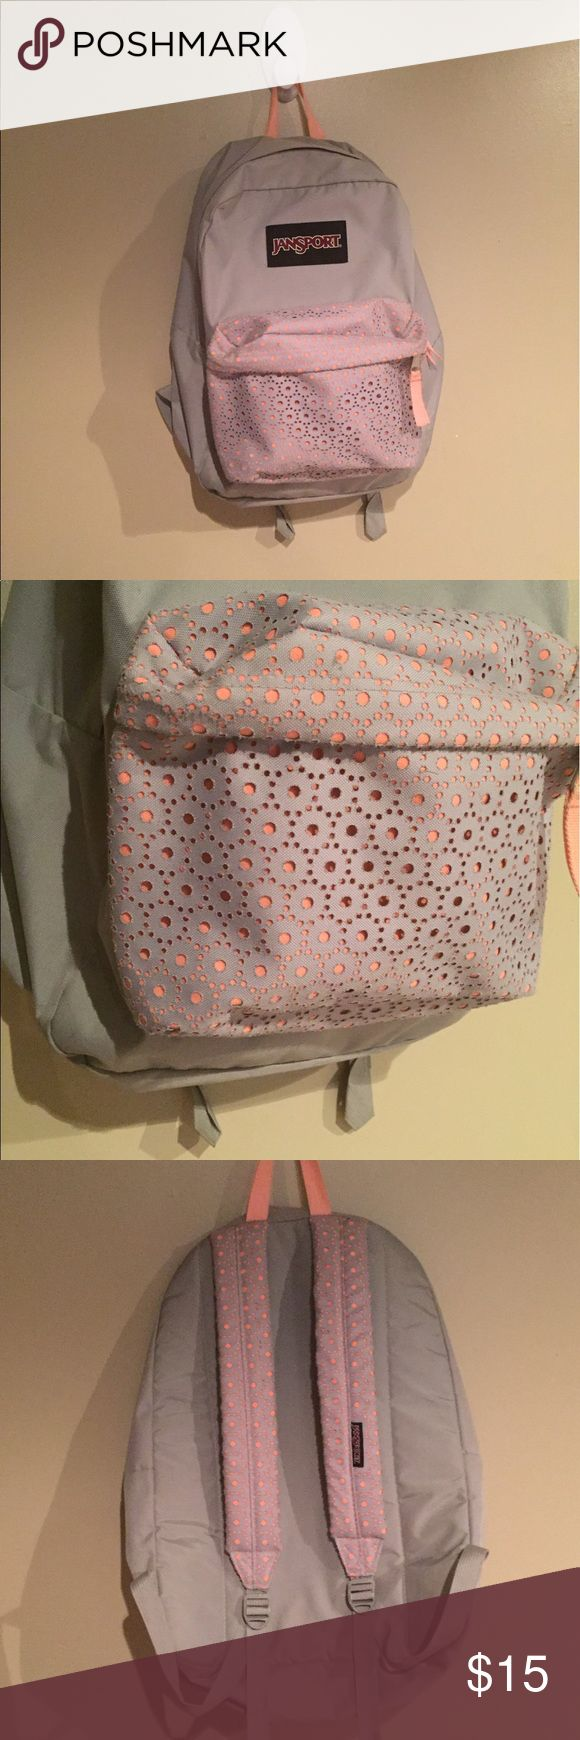 Lace jansport backpack Like new without tags beautiful and feminine jansport backpack. Has lace detail on straps and front pocket to make this bag special. Bag color is a light gray and the color underneath the lace is a hot pink Jansport Bags Backpacks